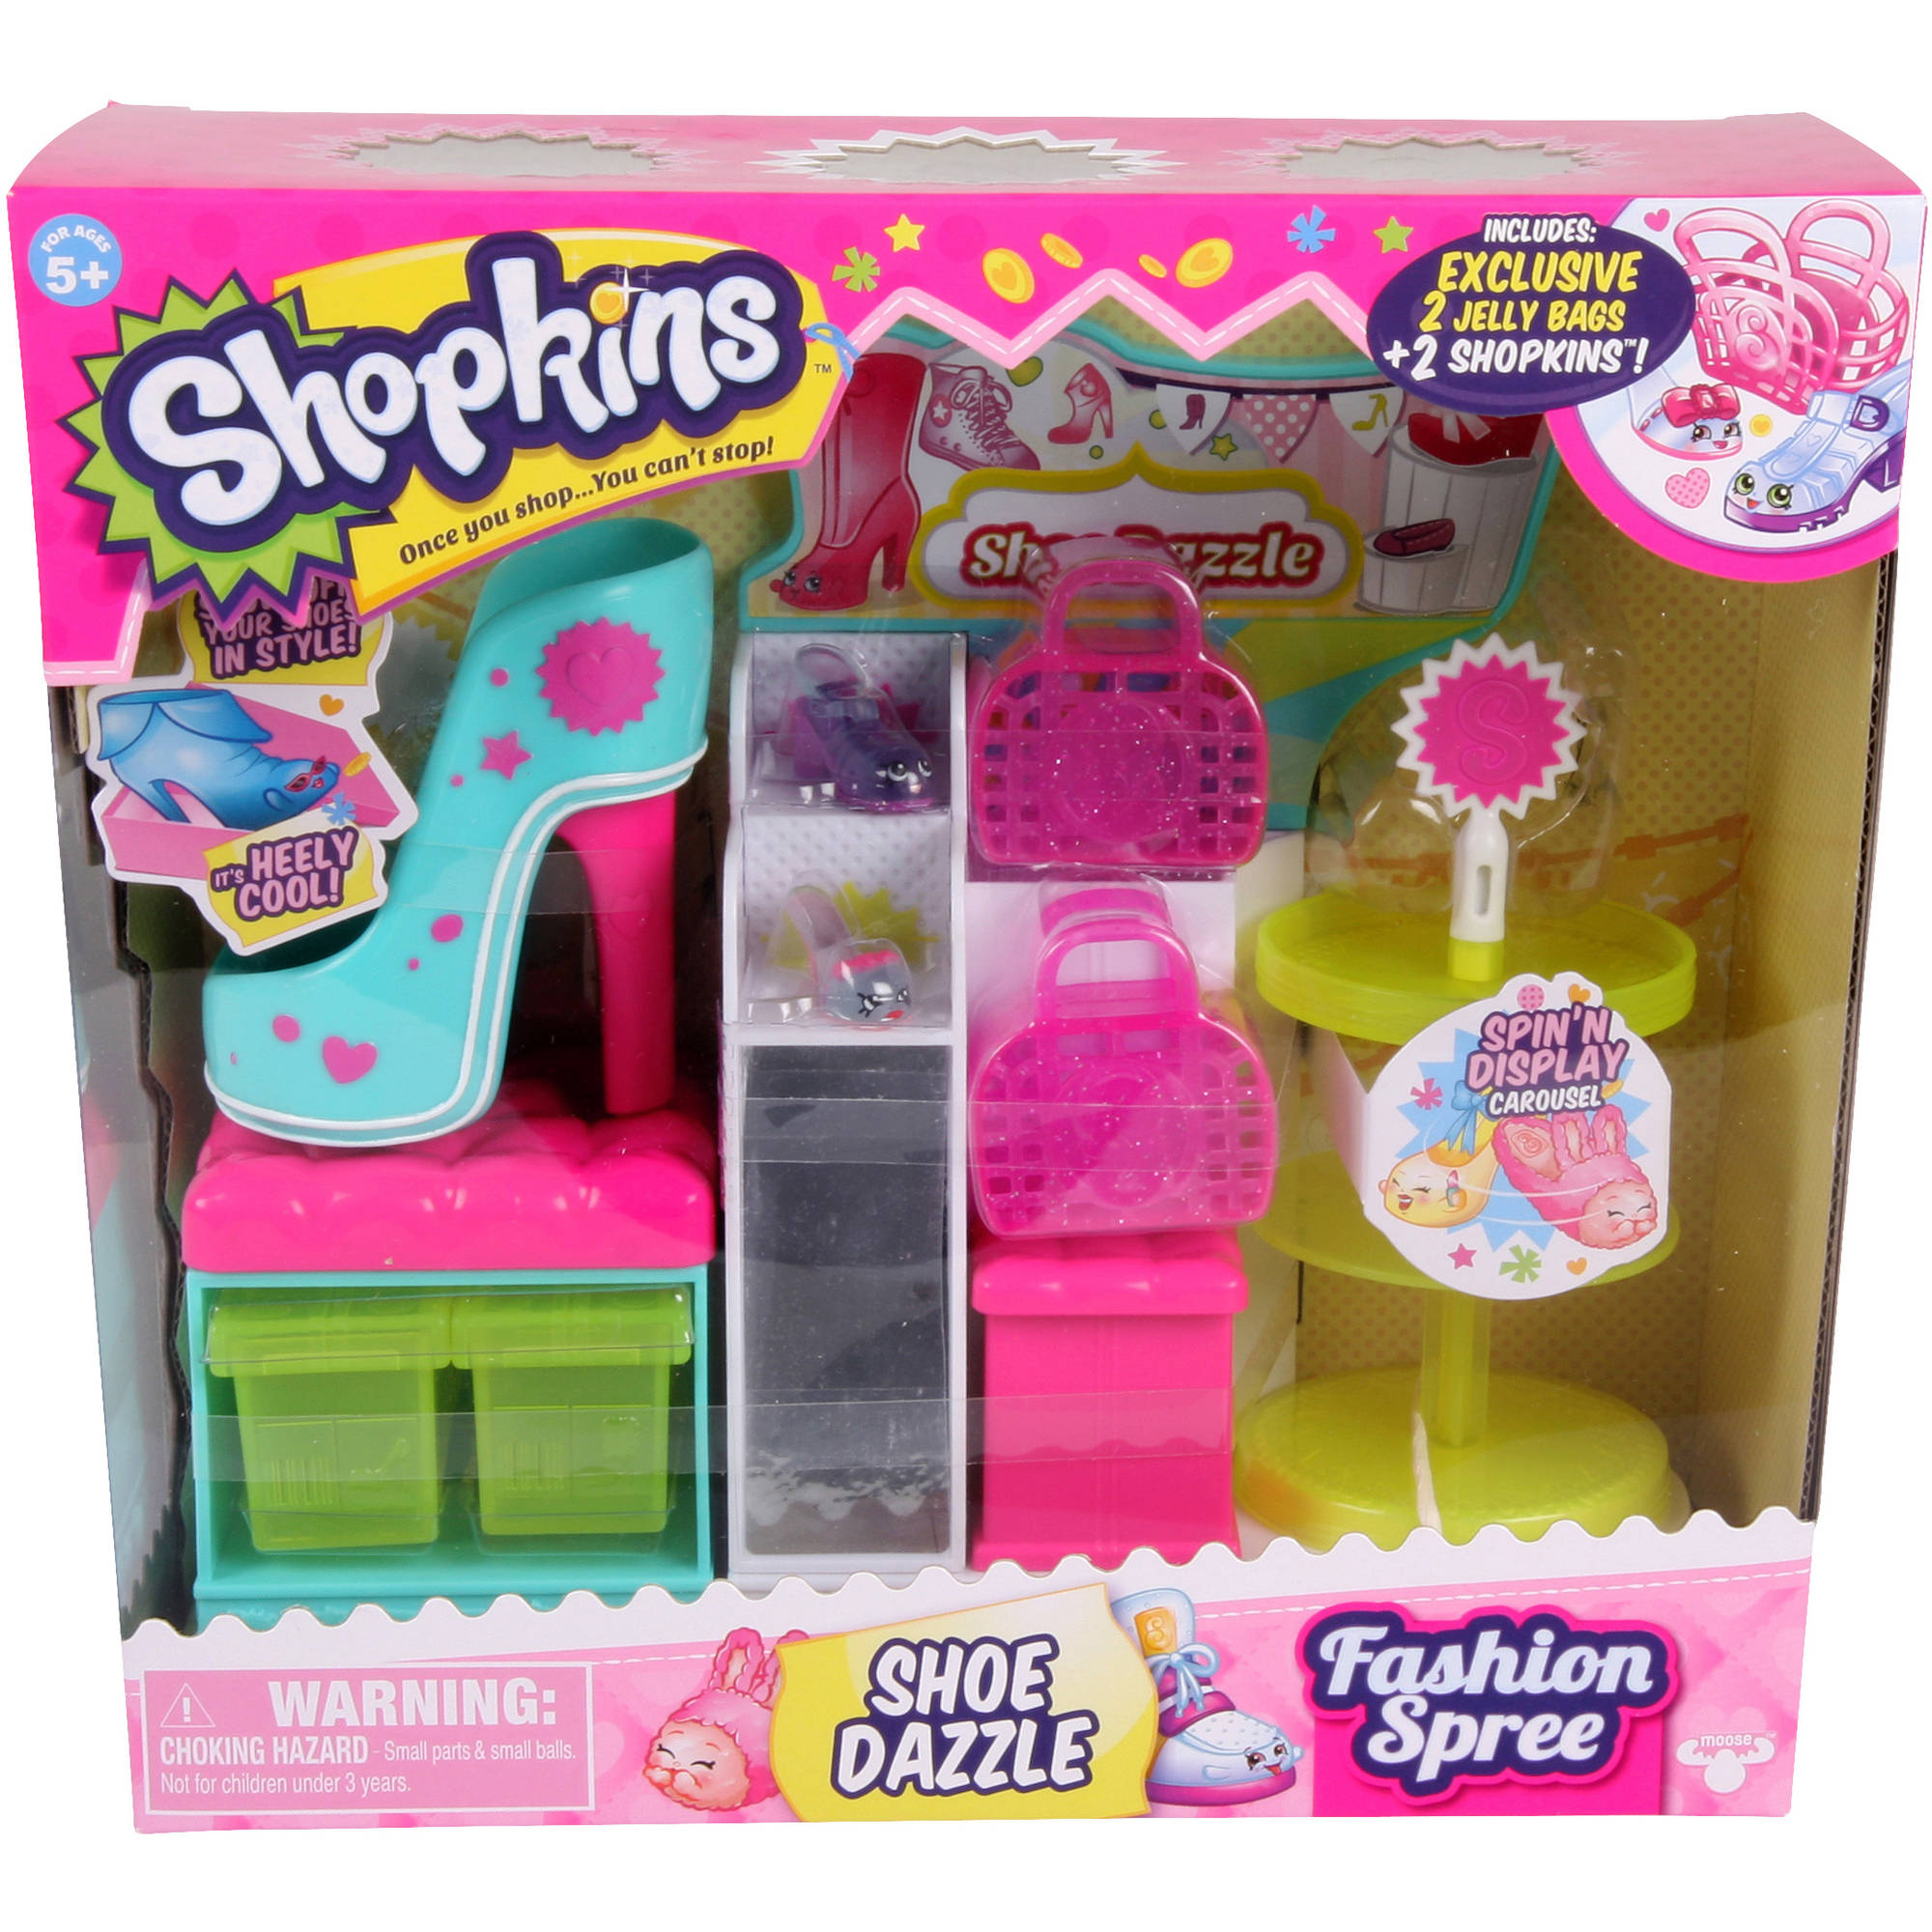 Shopkins Playsets, Shoe Dazzle Shoe Stand